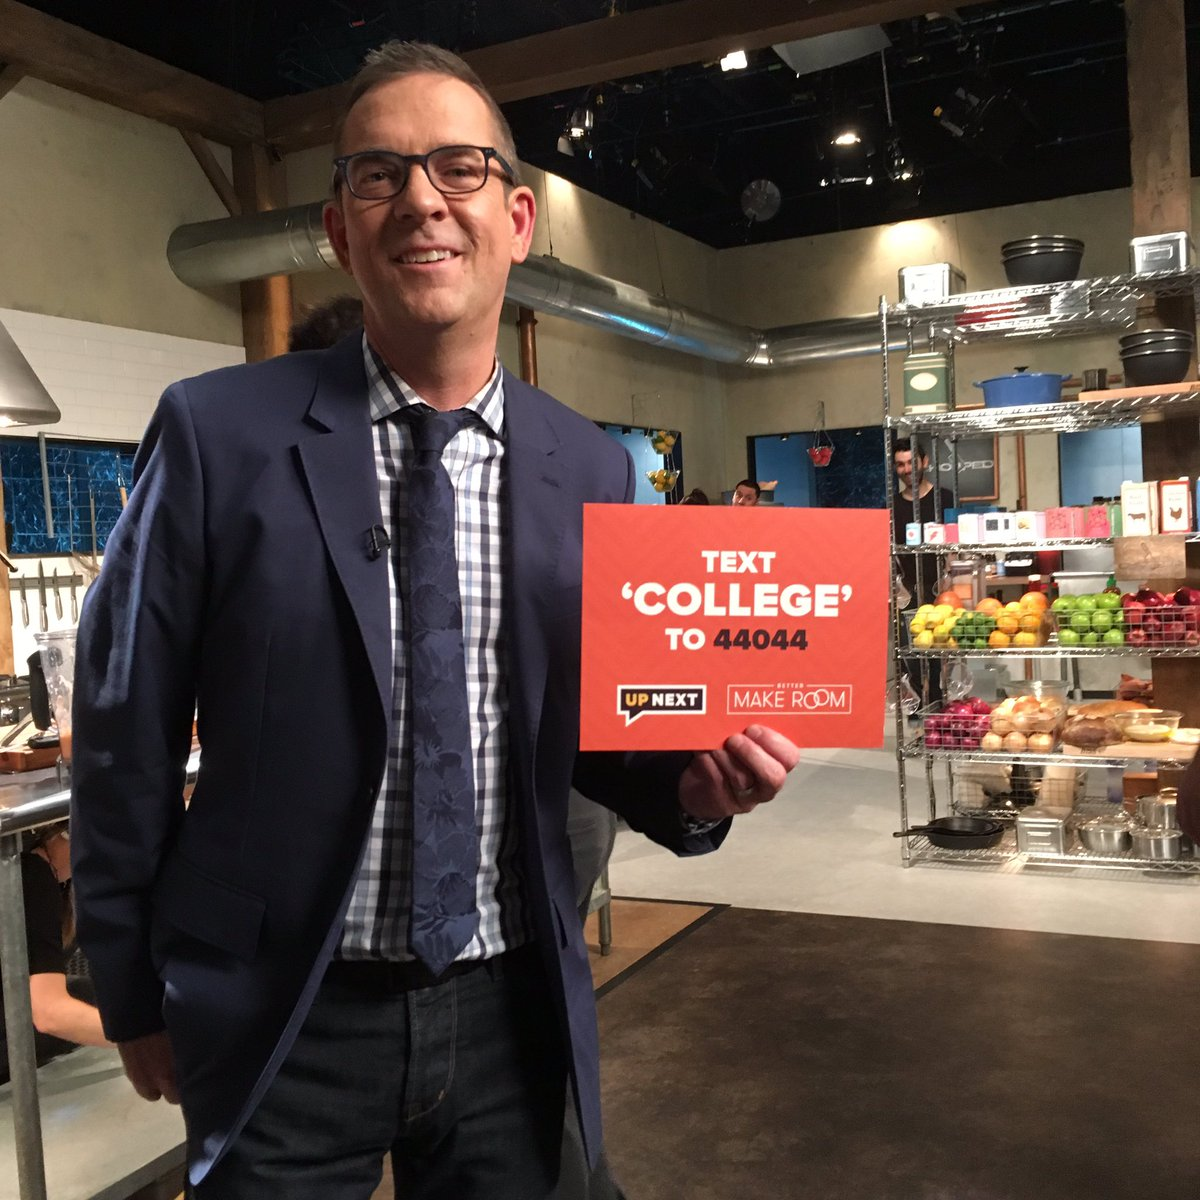 From @Purdue to a dream job—college opens worlds! Text COLLEGE to 44044 for tips on getting a degree #BetterMakeRoom https://t.co/HEvSuIJ1hd